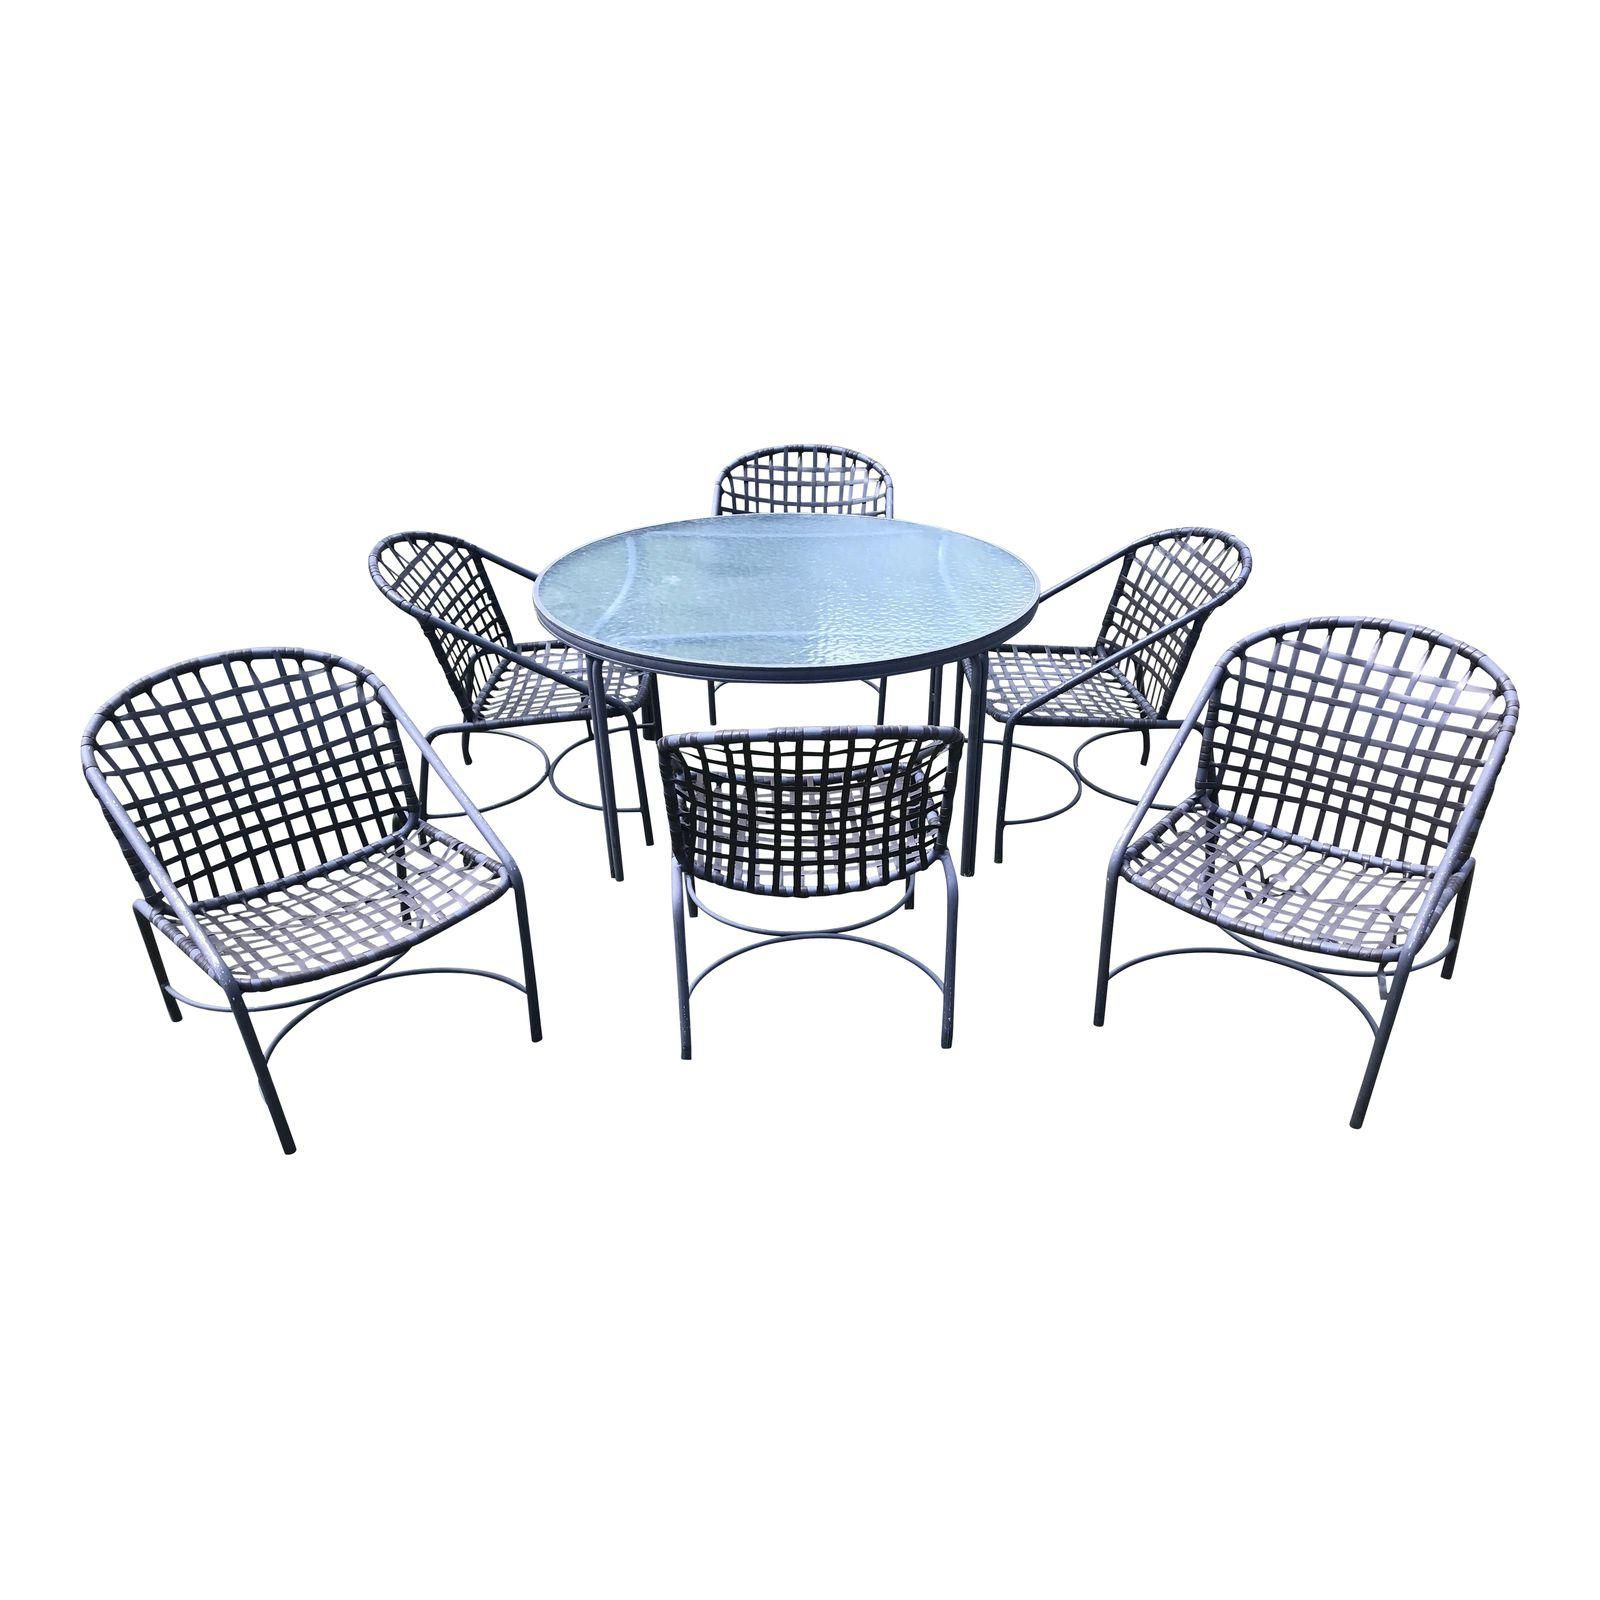 Vintage Brown Jordan Kantan Dining Table And 6 Dining Chairs Image 1 Of 13 Outdoor Furniture Sets Outdoor Furniture Furniture